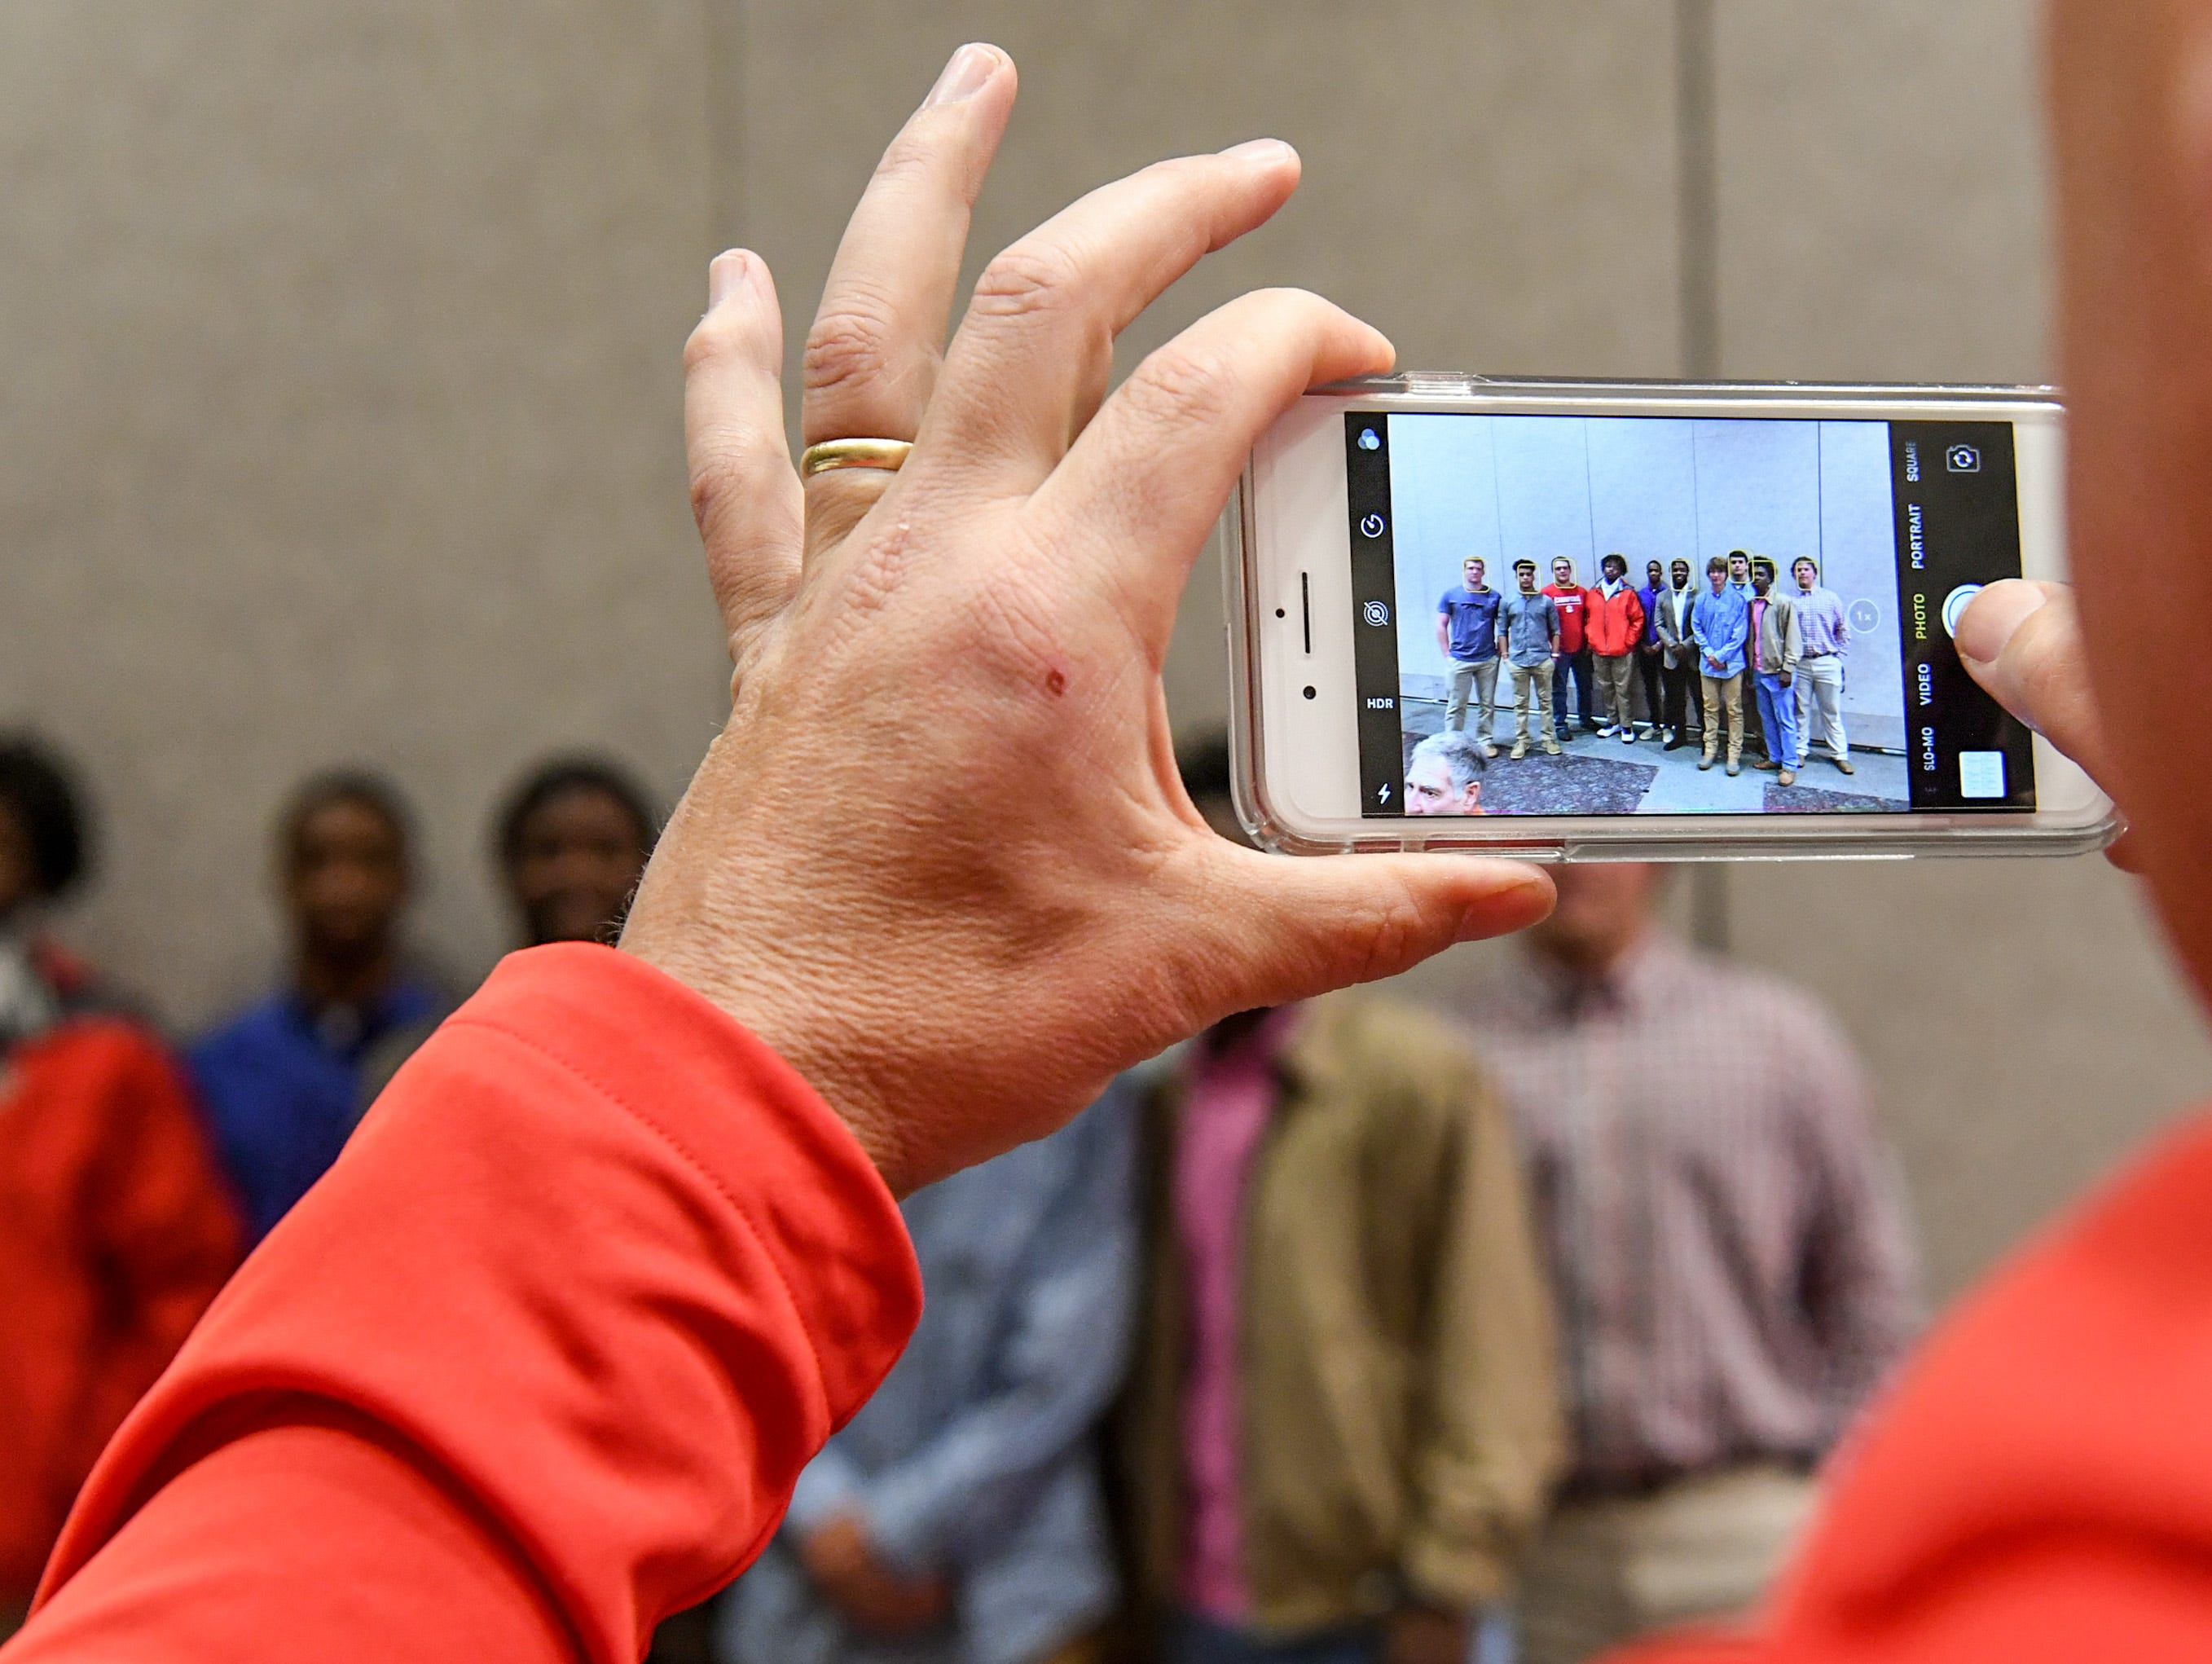 Belton-Honea Path High School coach Russell Blackston takes a photo of players gathering for a photo with former Bear linebacker Kendall Joseph, middle, during the Anderson Area Touchdown Club Annual Awards Banquet at the Anderson County Civic Center Monday, April 8th, 2019. The club and Anderson County Councilman Craig Wooten honored Joseph, who was part of two National Championship Clemson football teams.